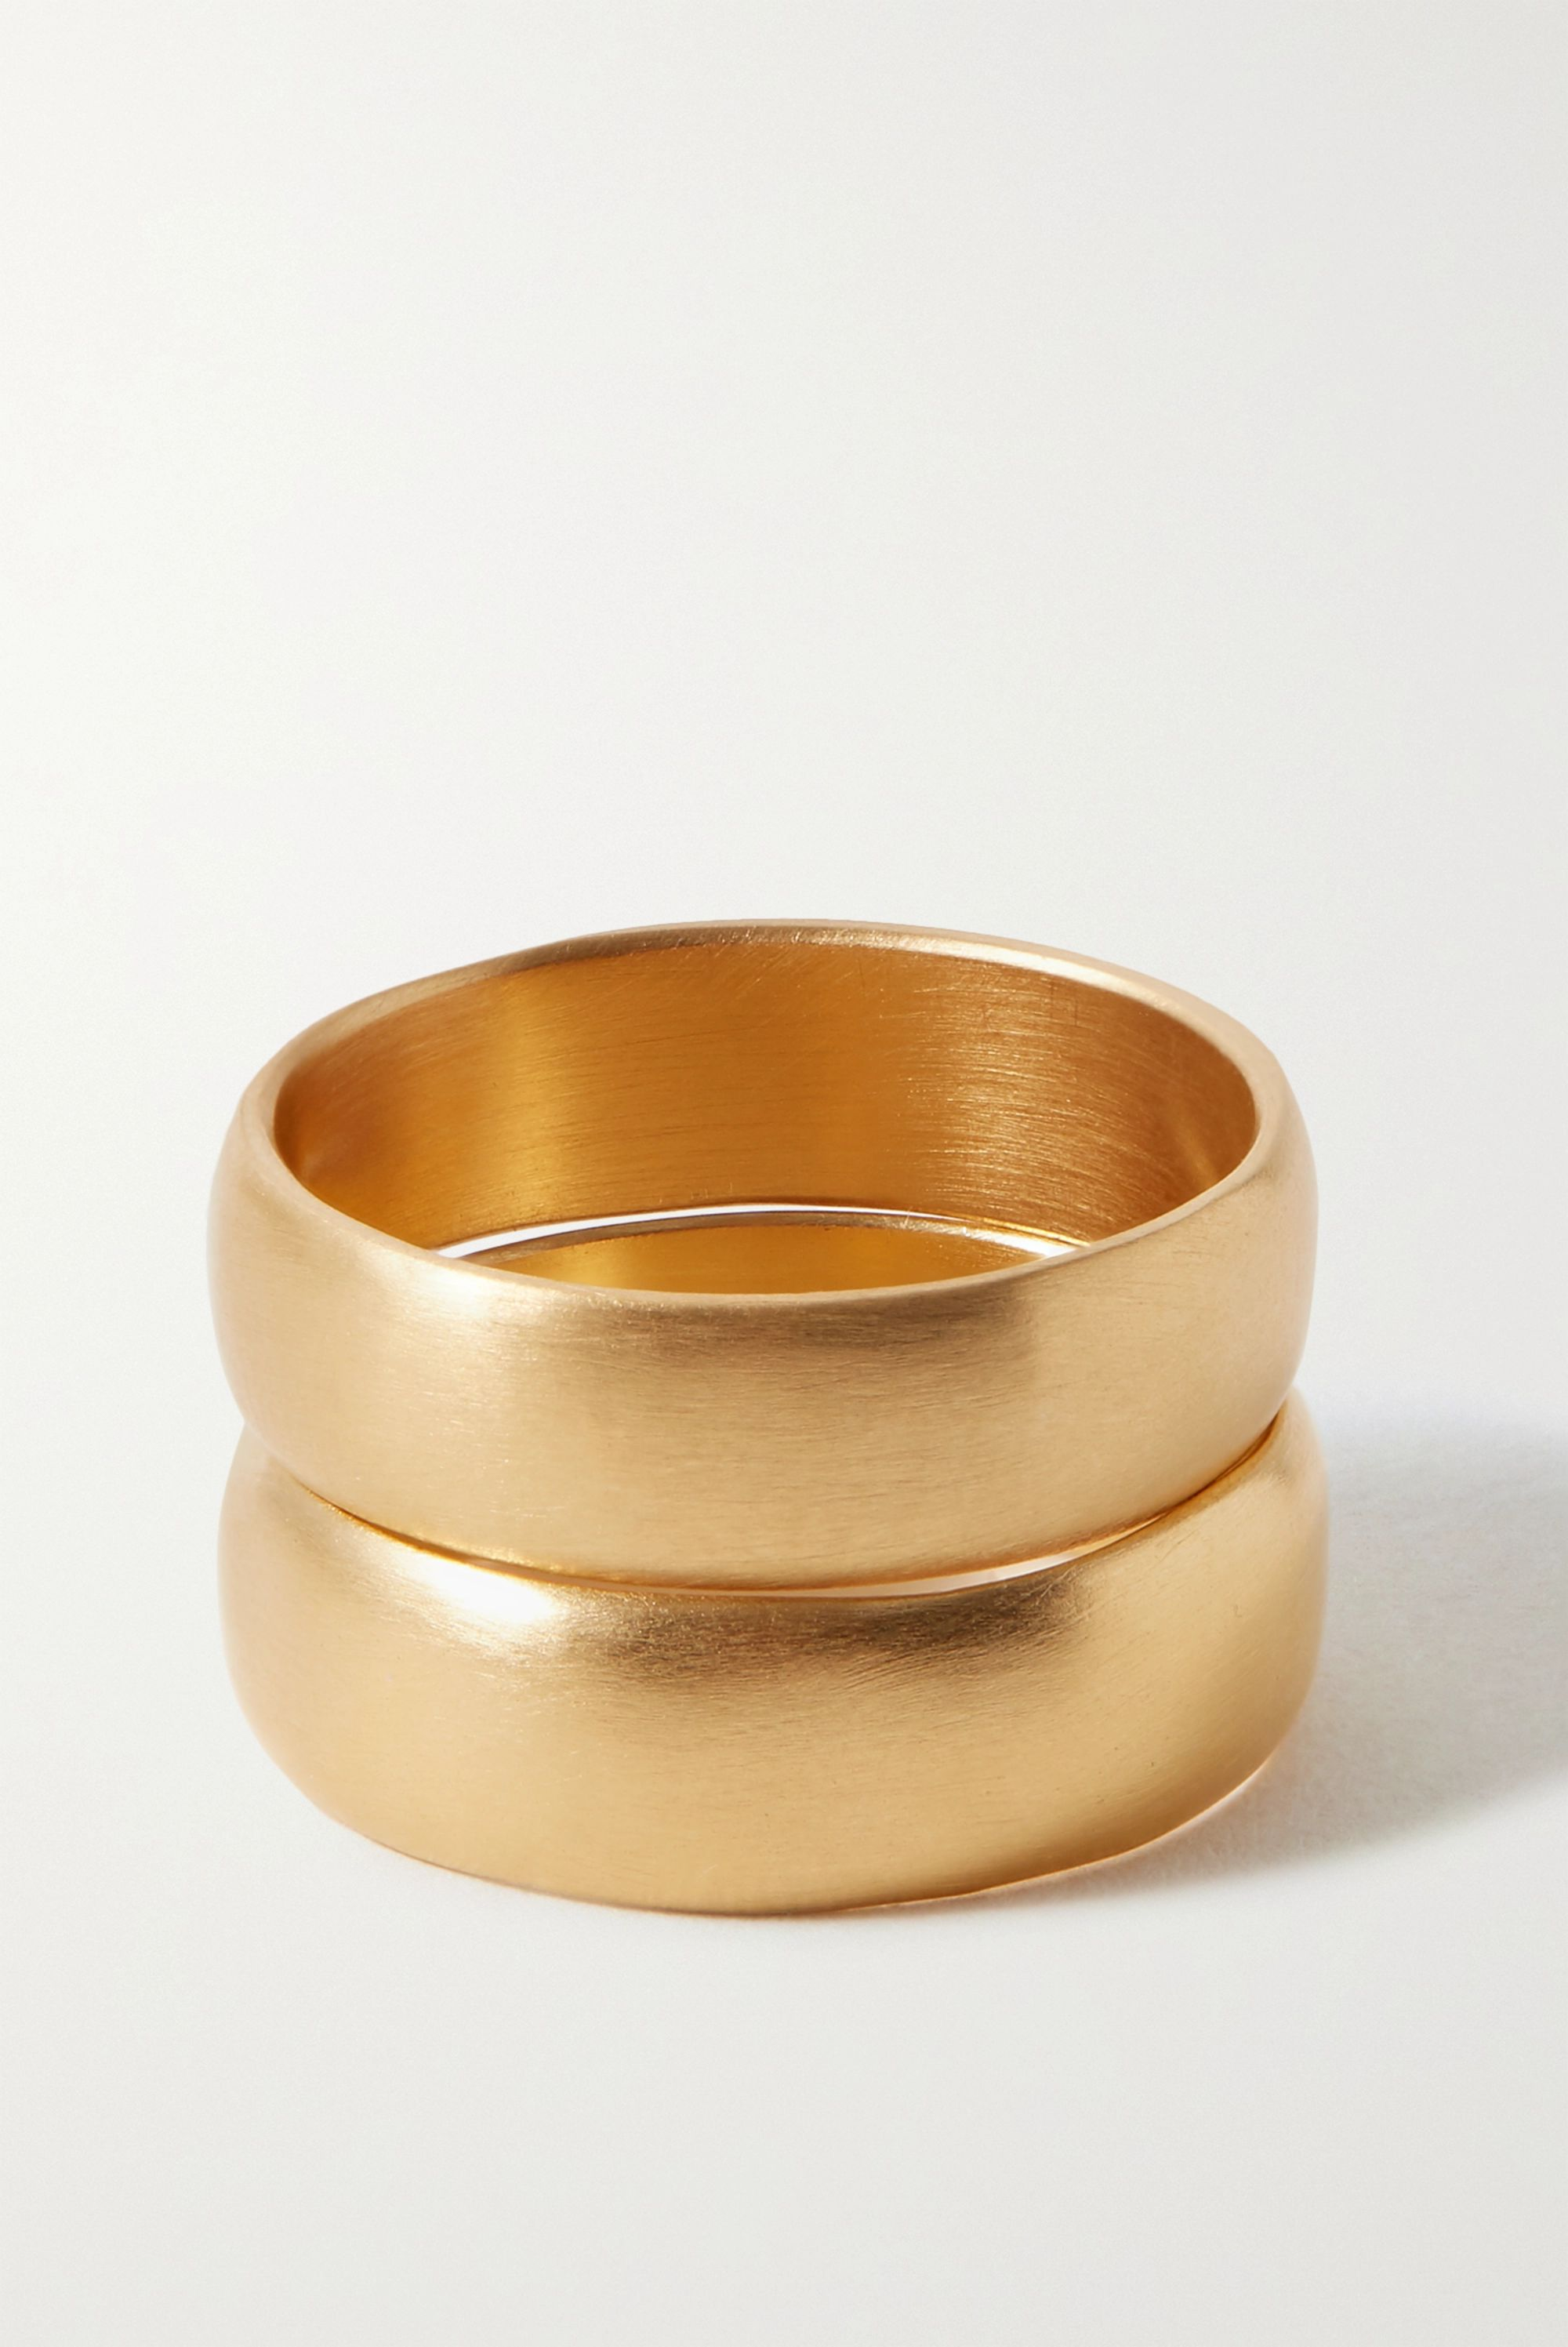 1064 Studio Deep In Grassland set of two gold-plated rings